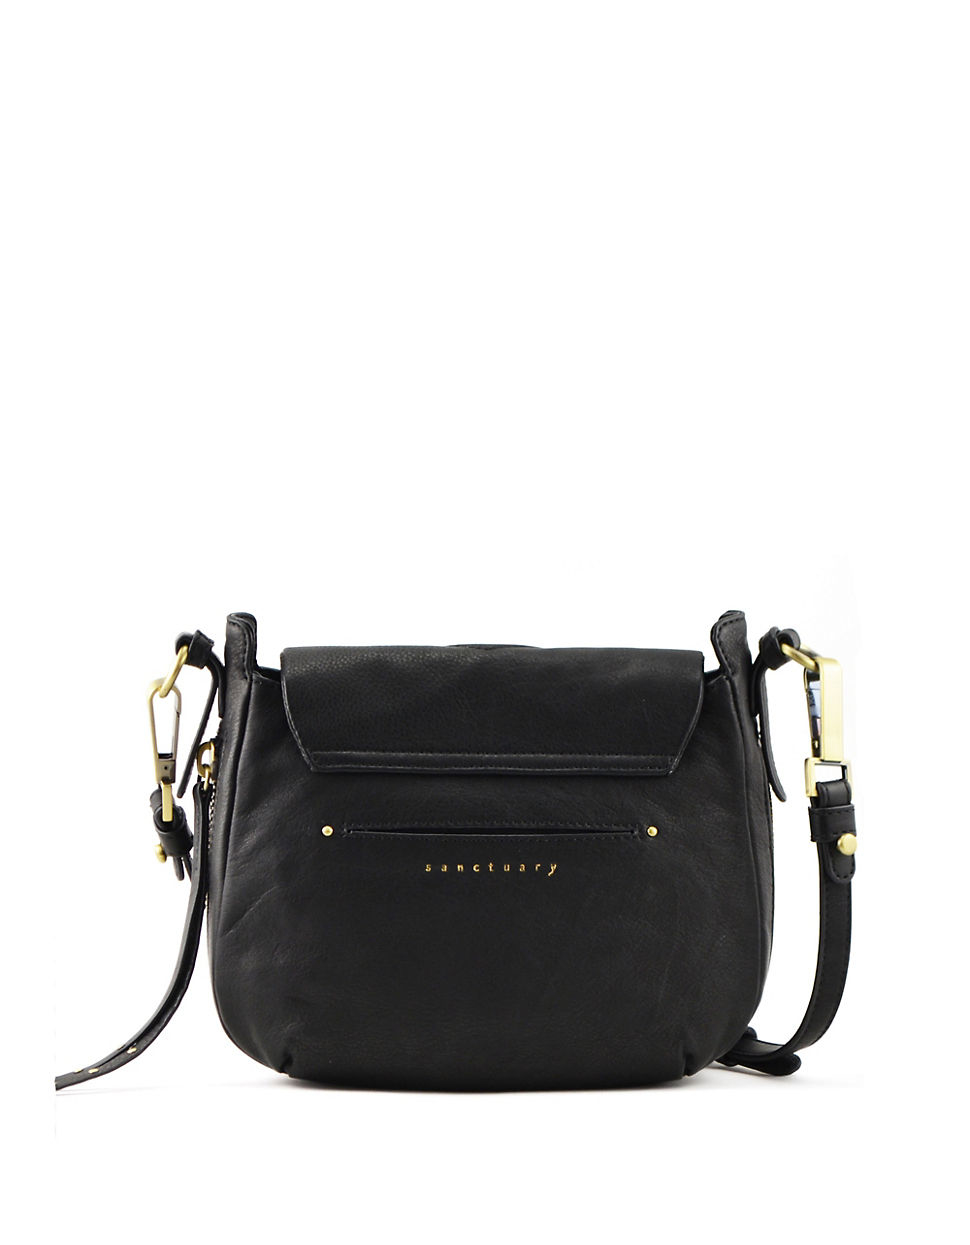 Sanctuary Indie Black Leather Crossbody in Black | Lyst